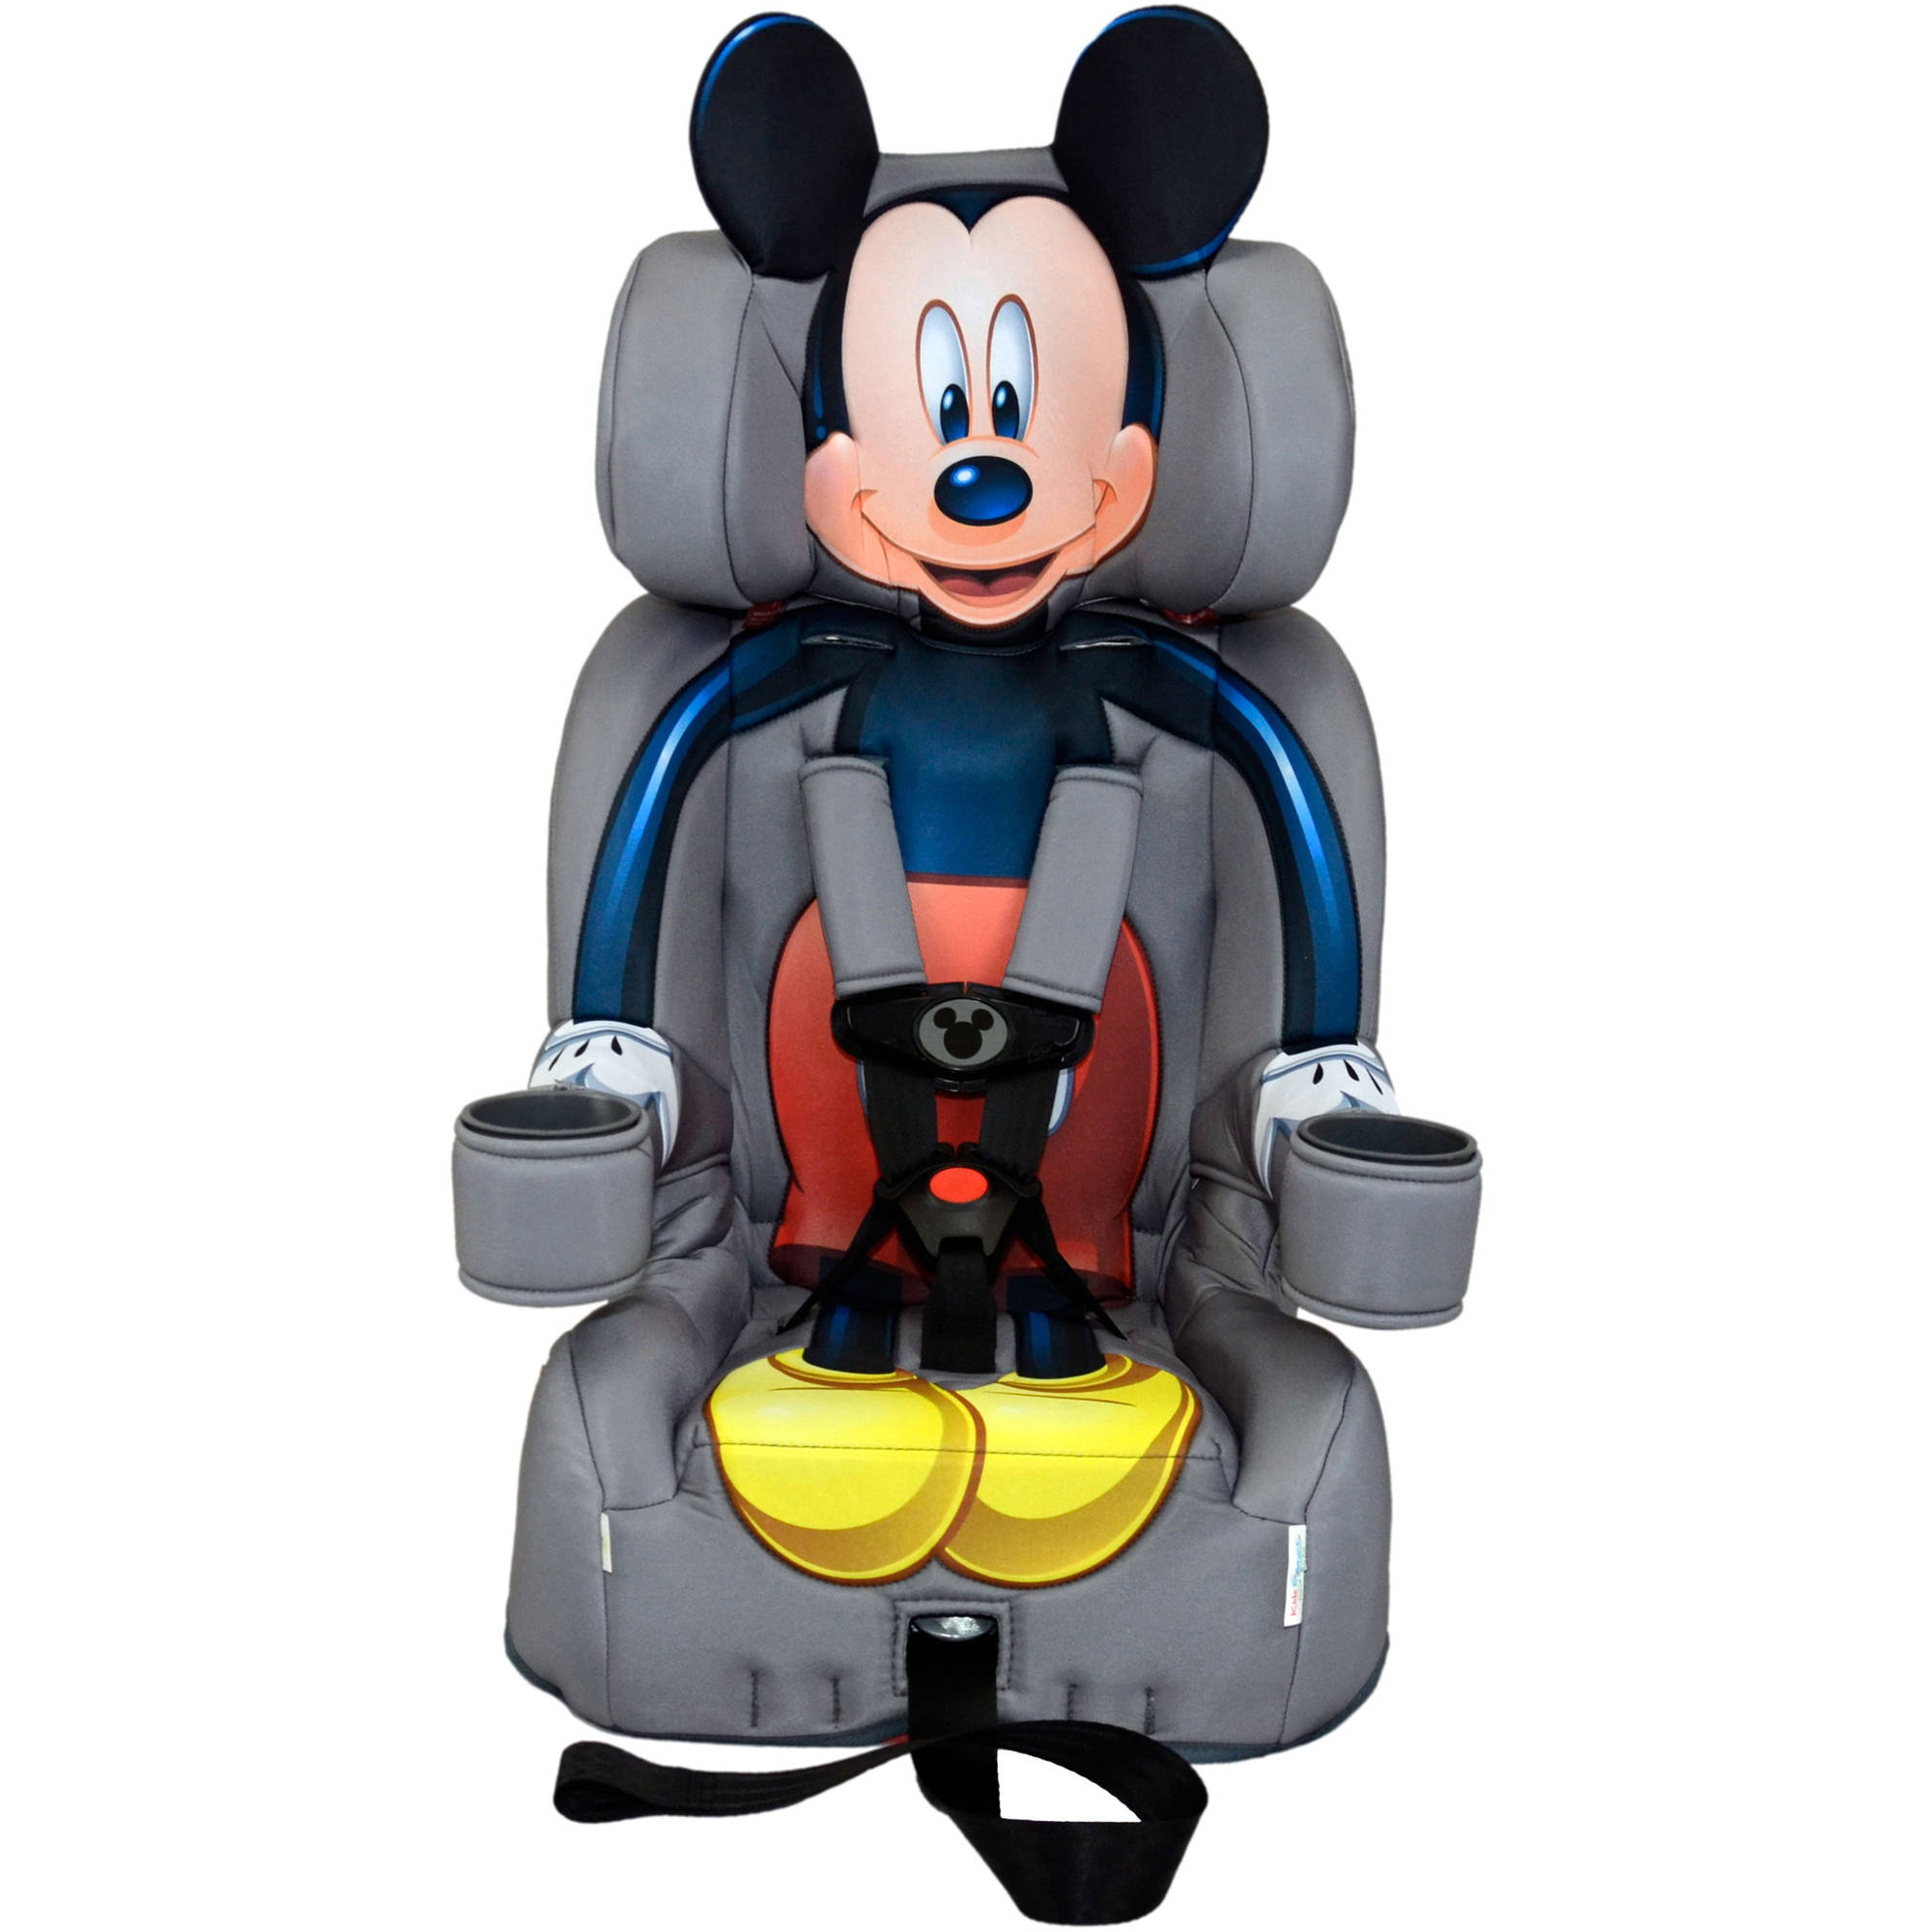 Kidsembrace Friendship Combination Harness Booster Car Seat, Mickey Mouse